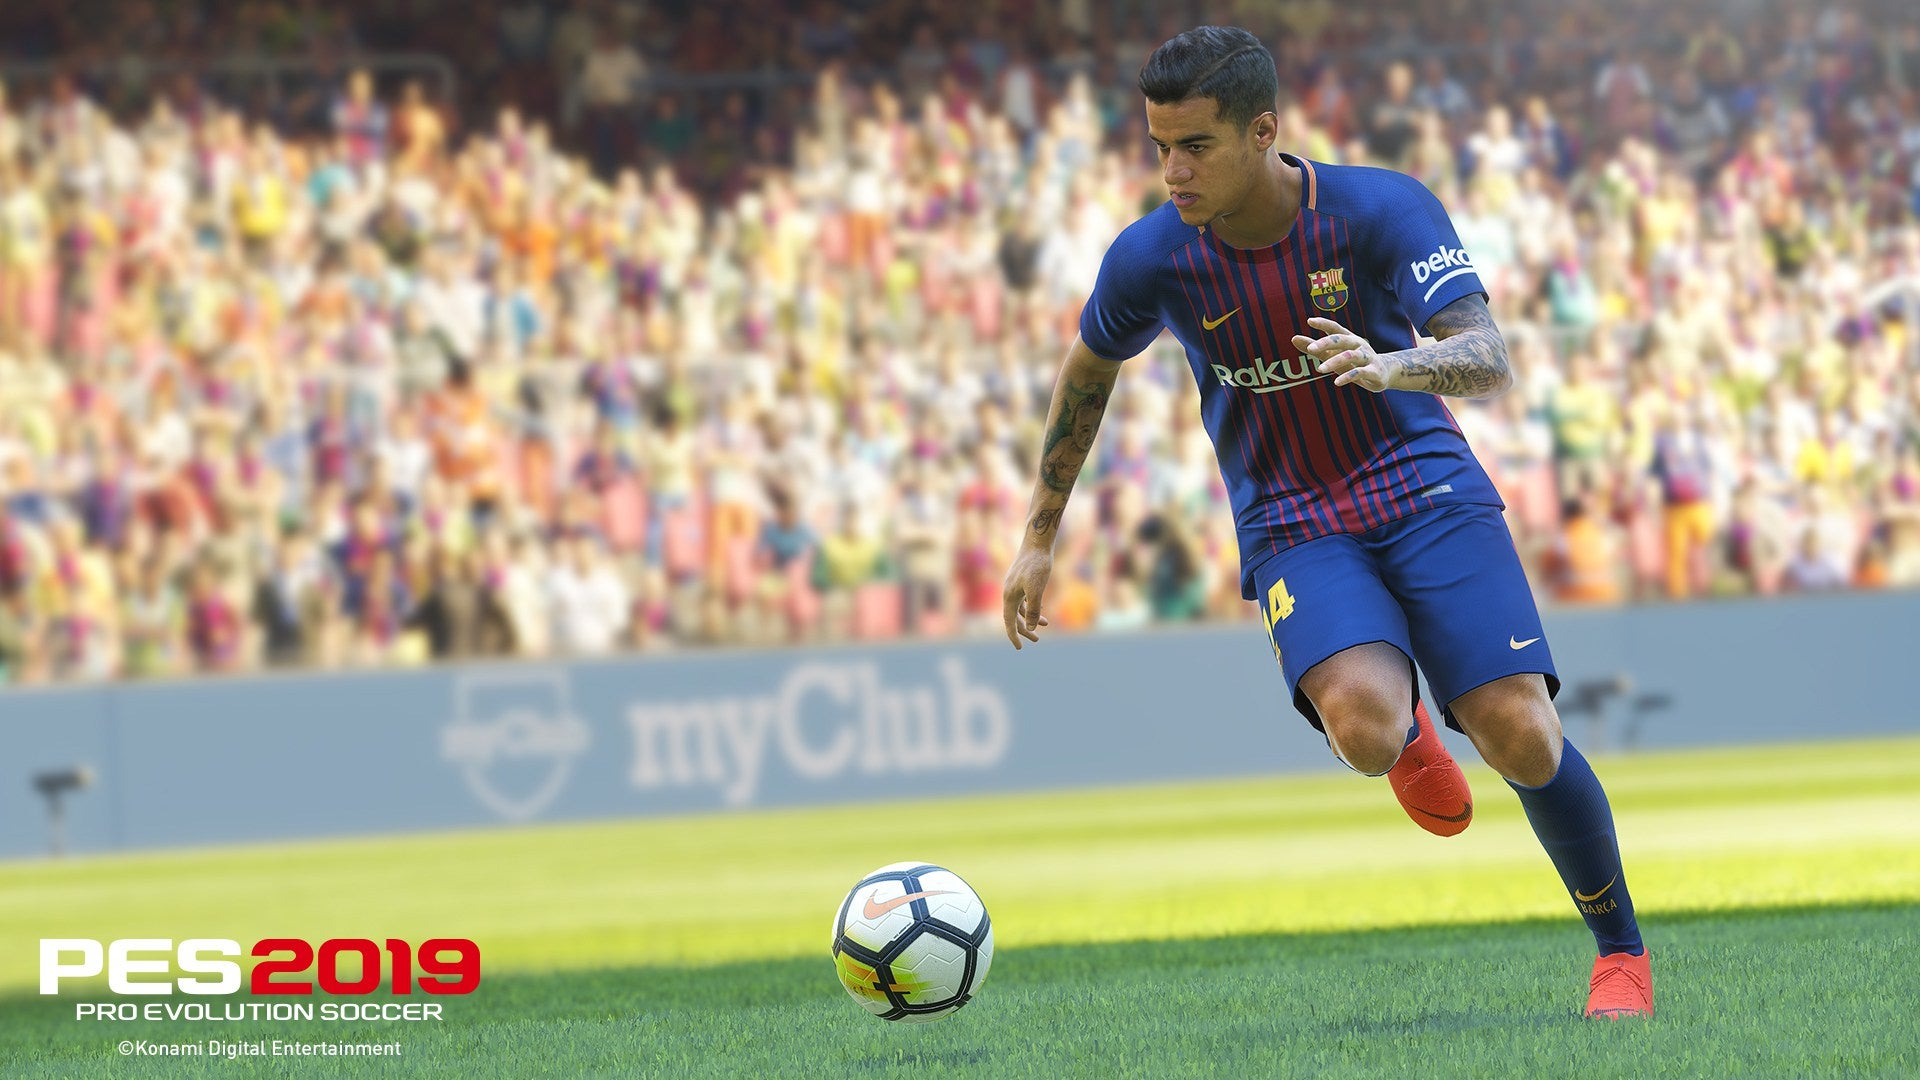 PES 2019 review | Trusted Reviews